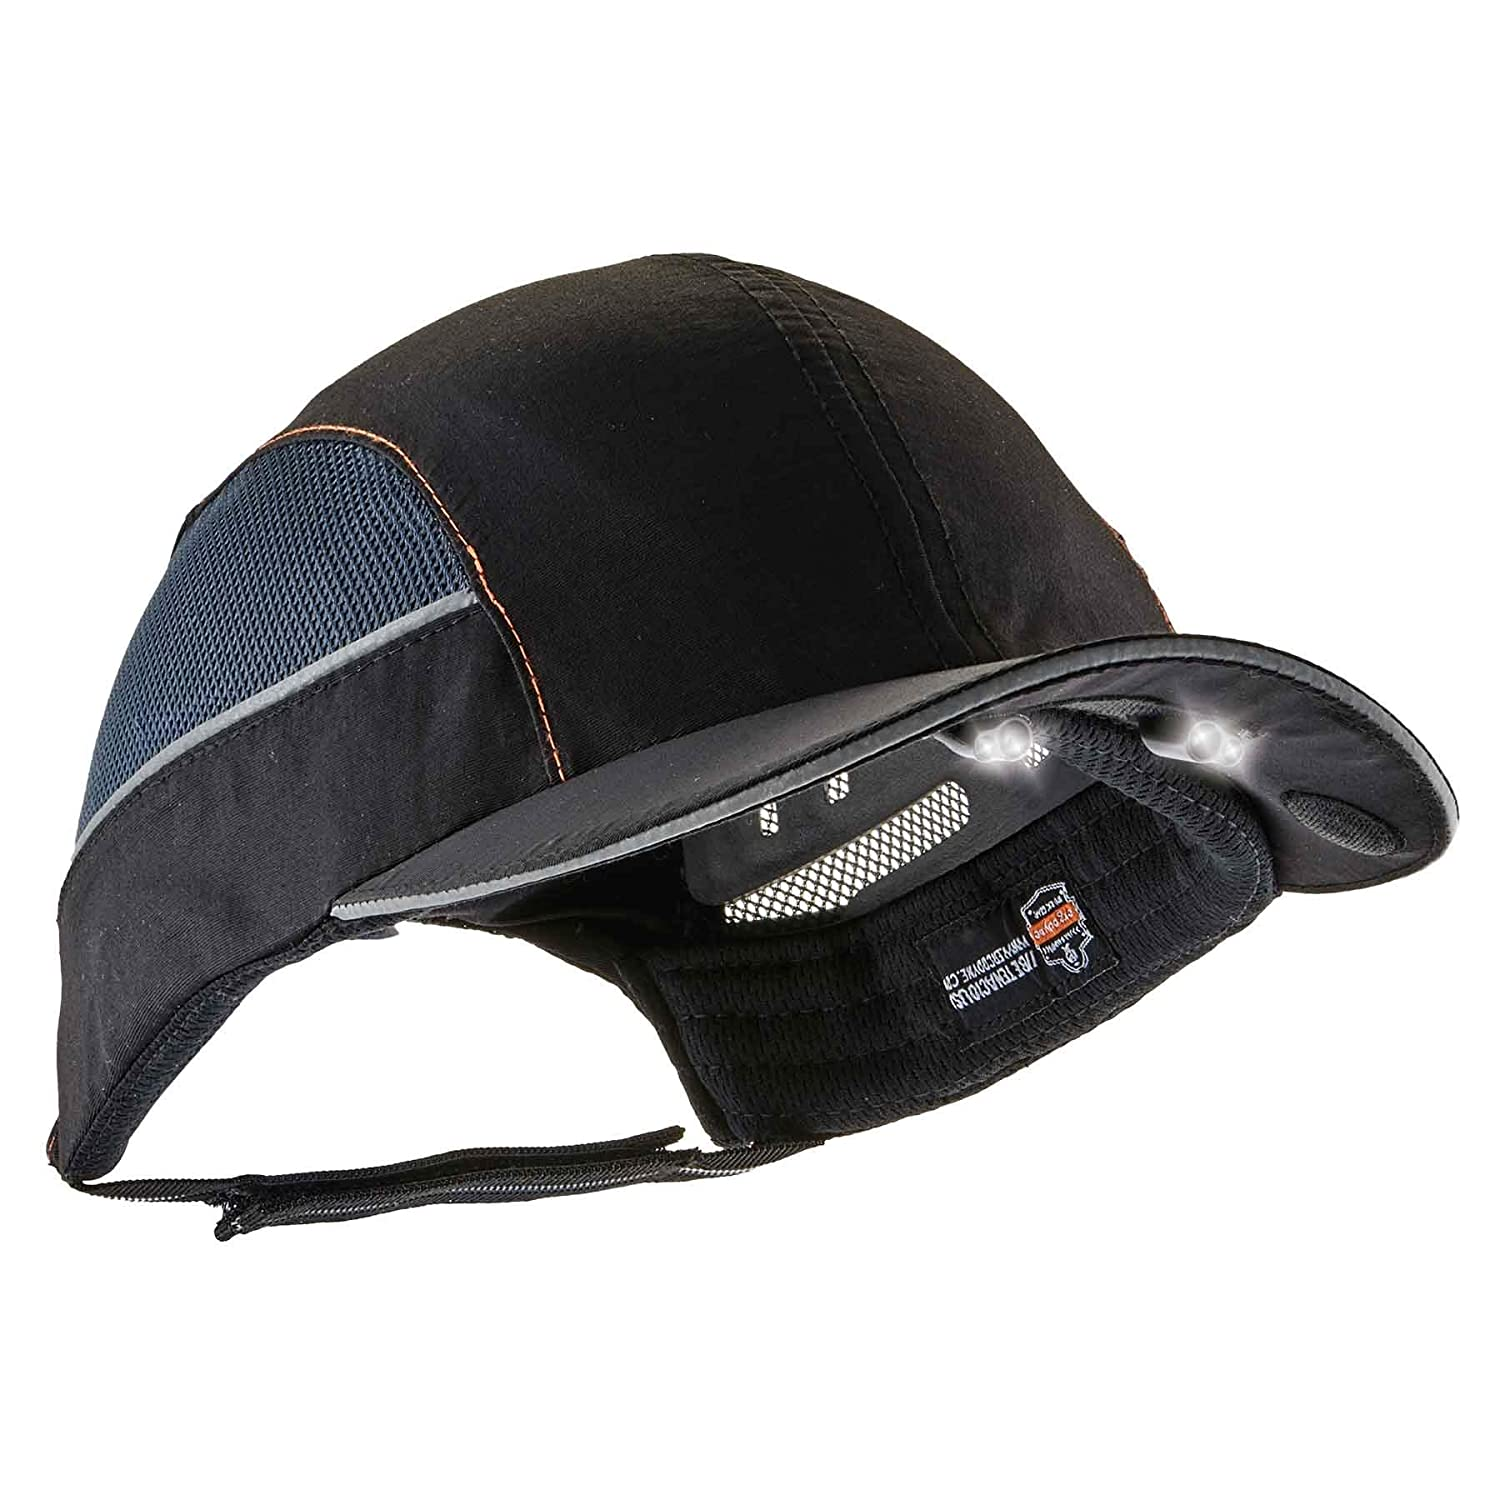 3aae2a5042b86 Safety Bump Cap with LED Brim Lighting